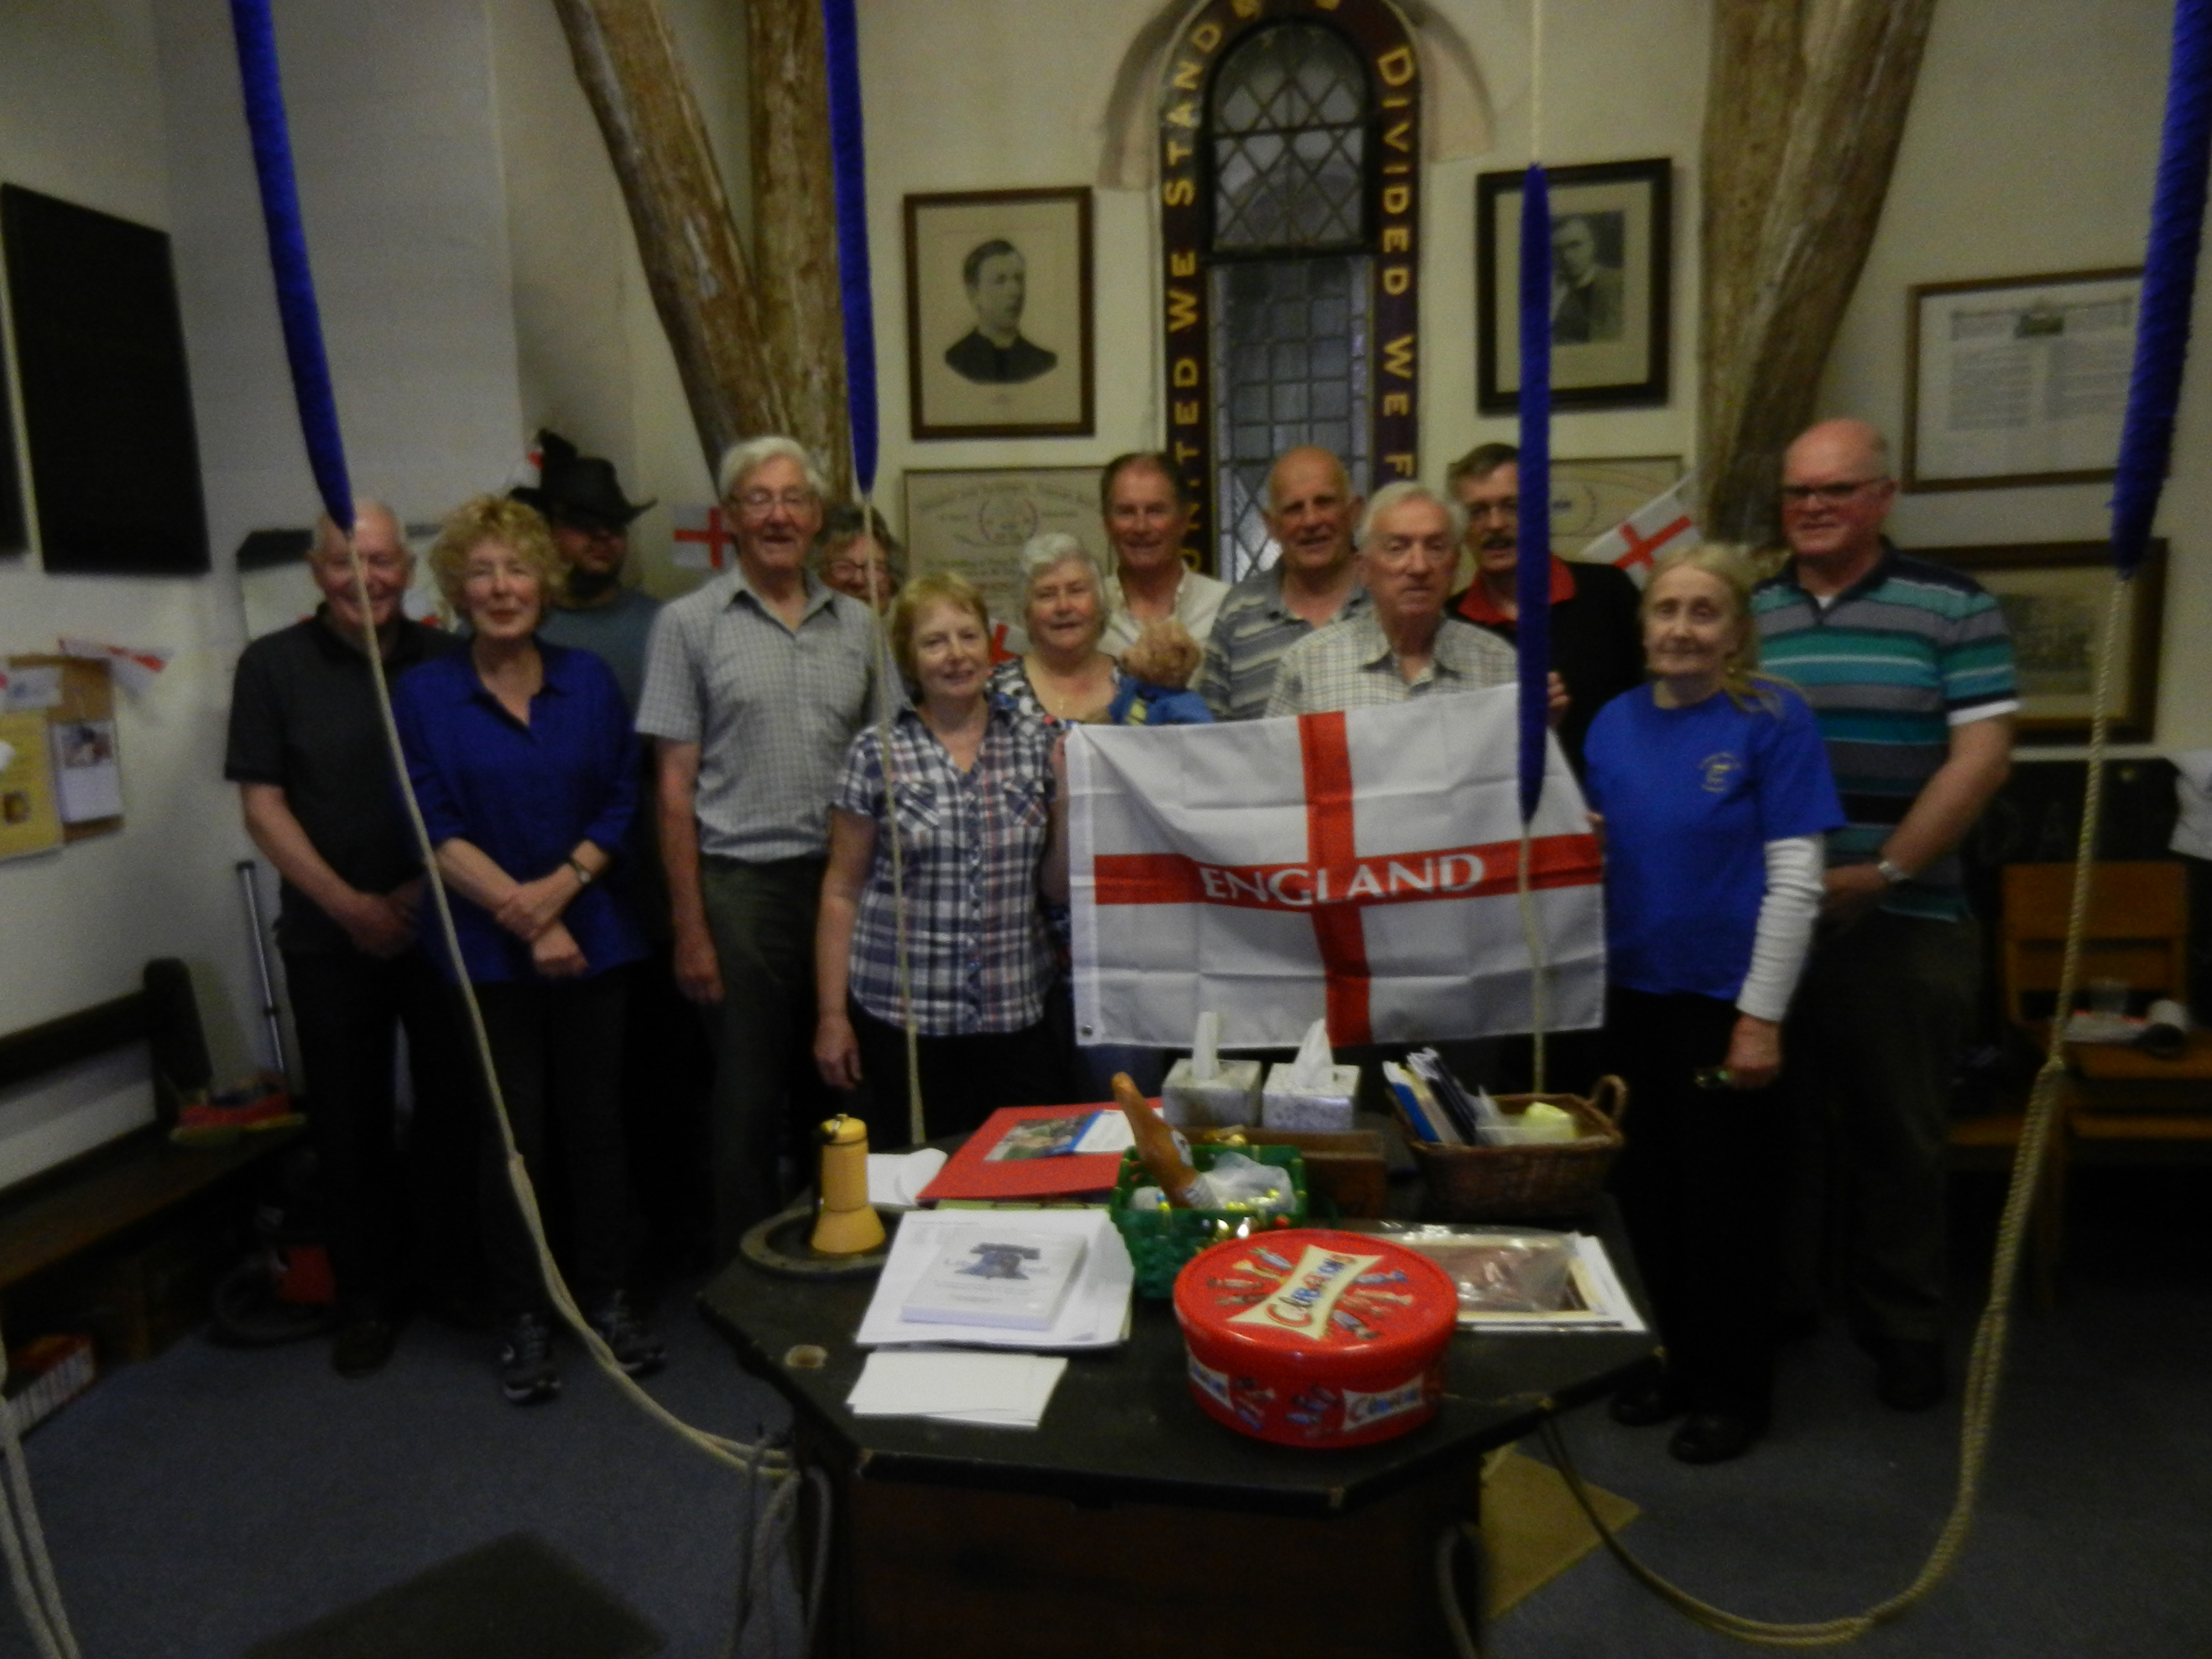 Ringing for England 2019